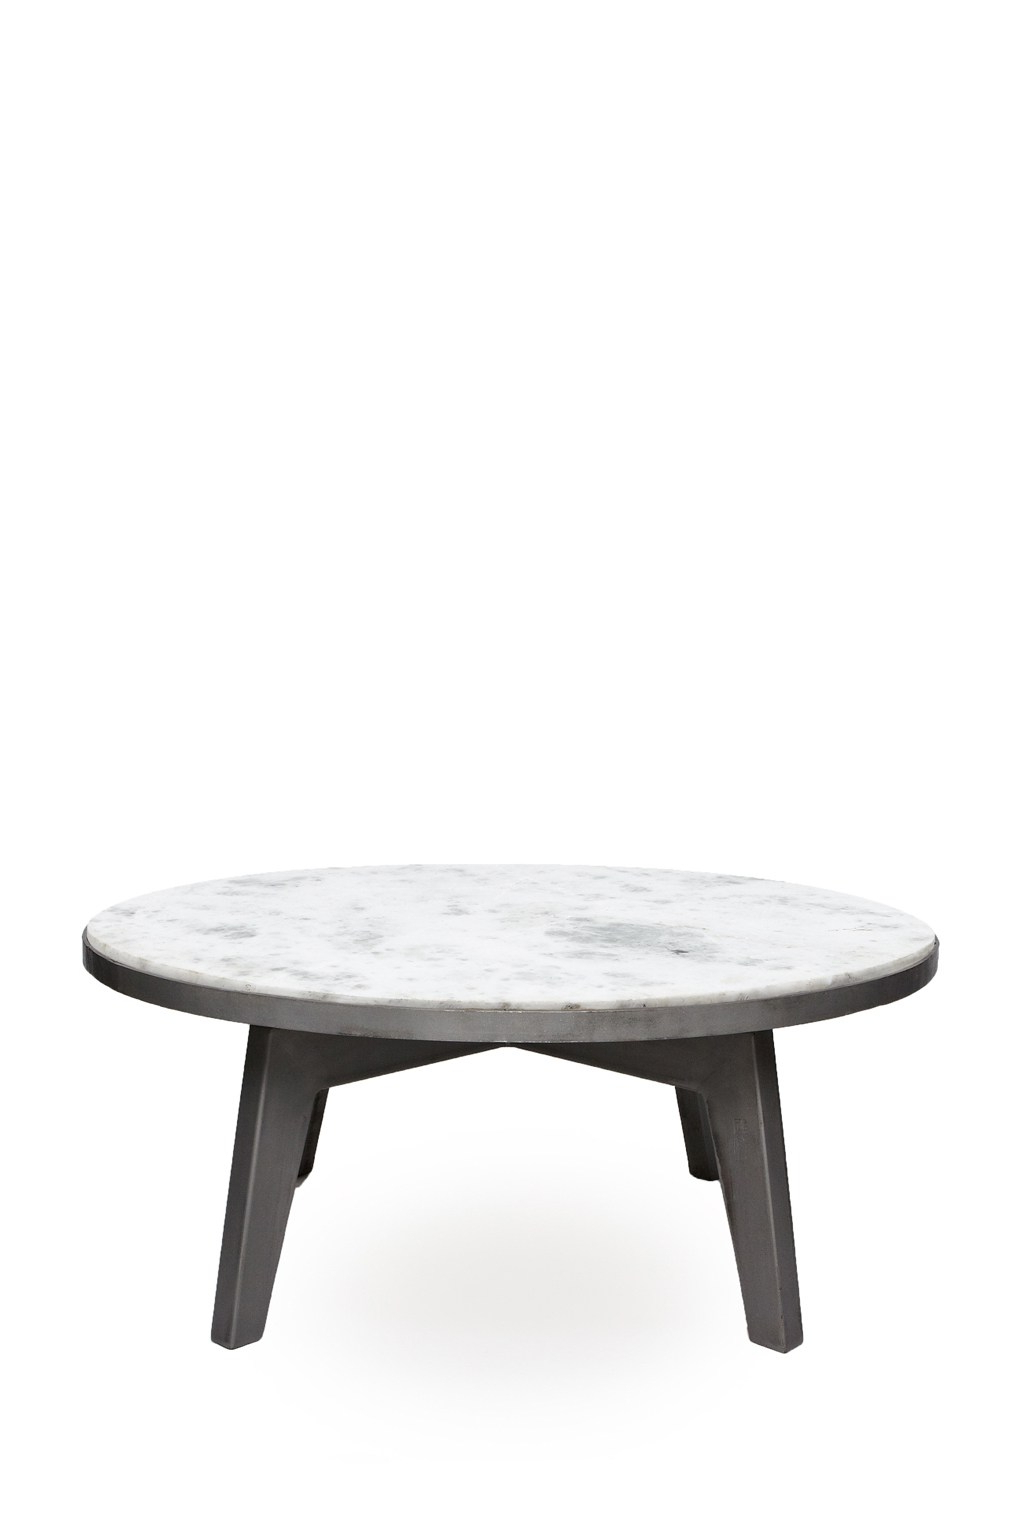 Axis Cocktail Tables